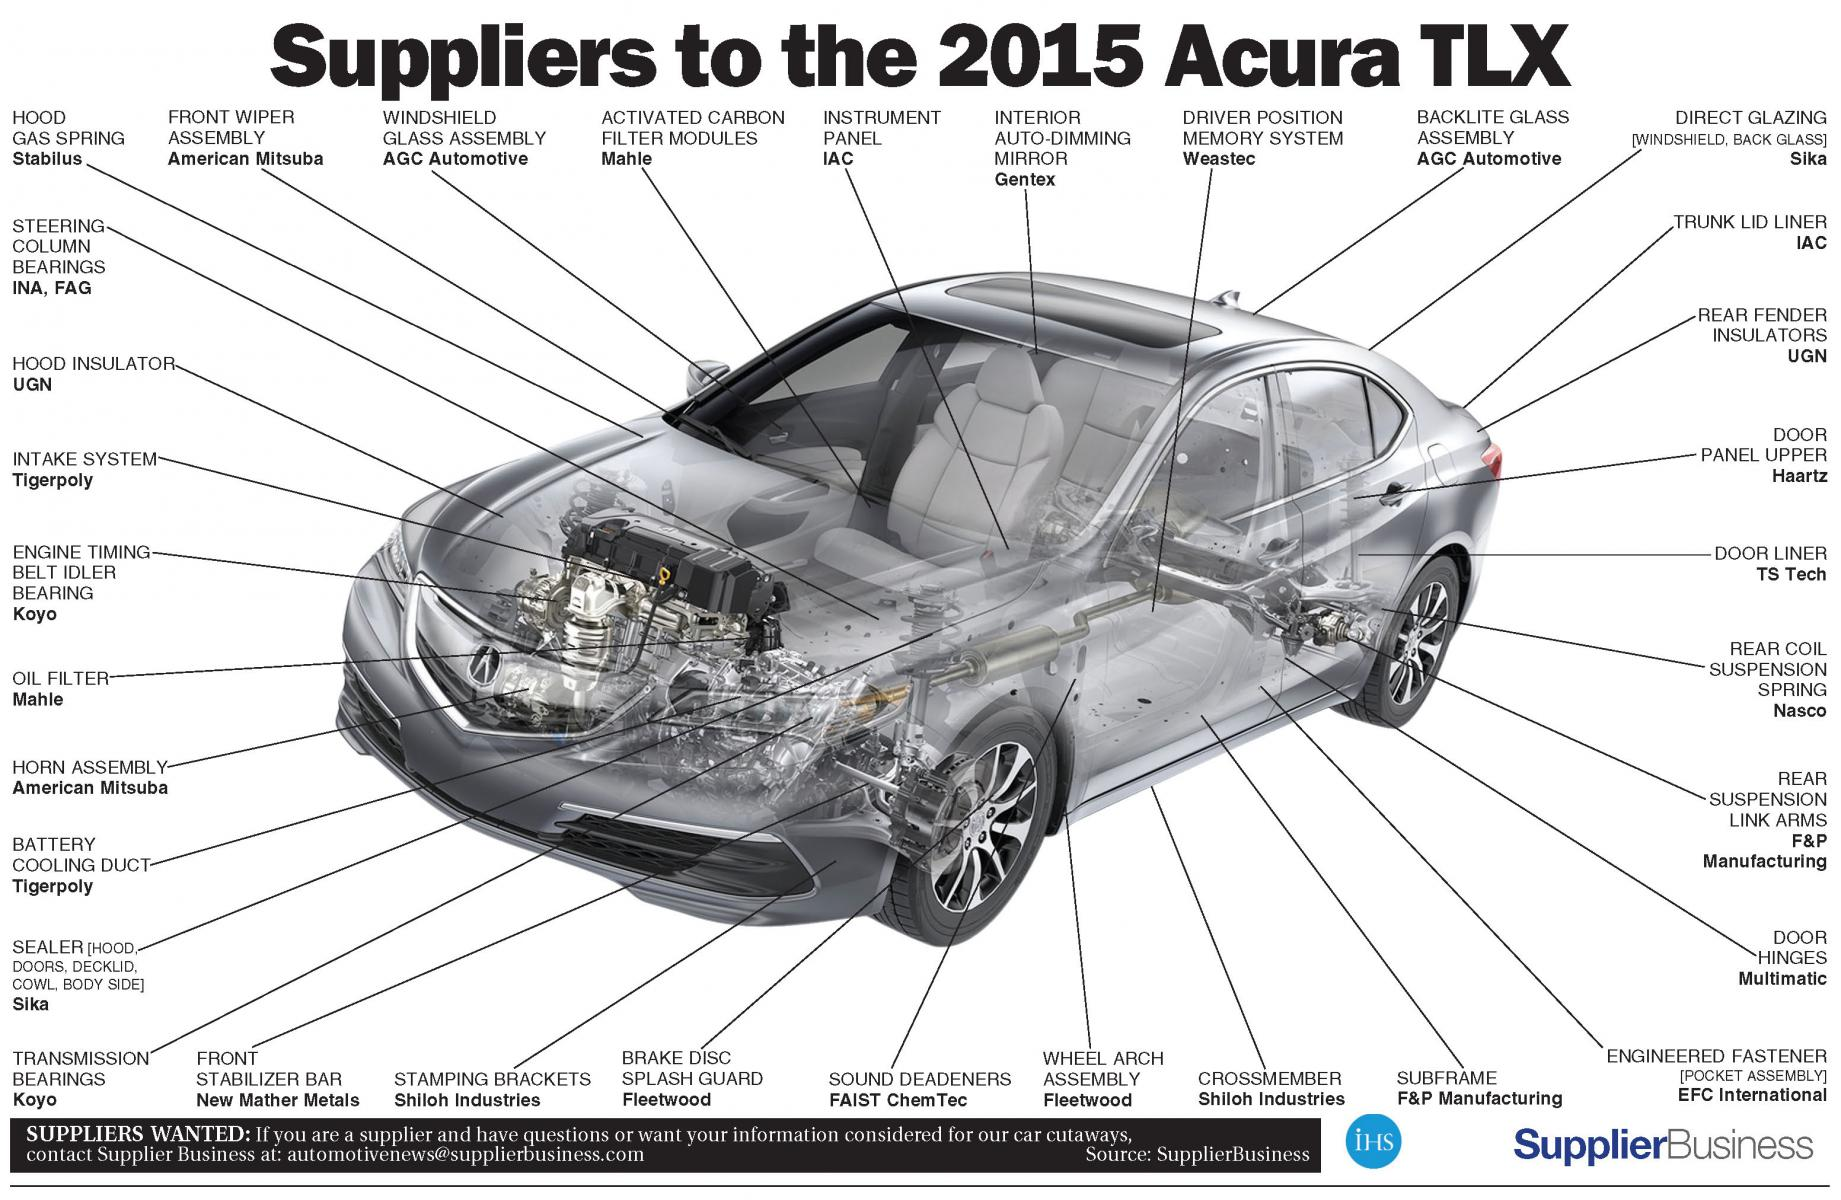 Suppliers To The Acura TLX Acura TLX Forum - Acura part